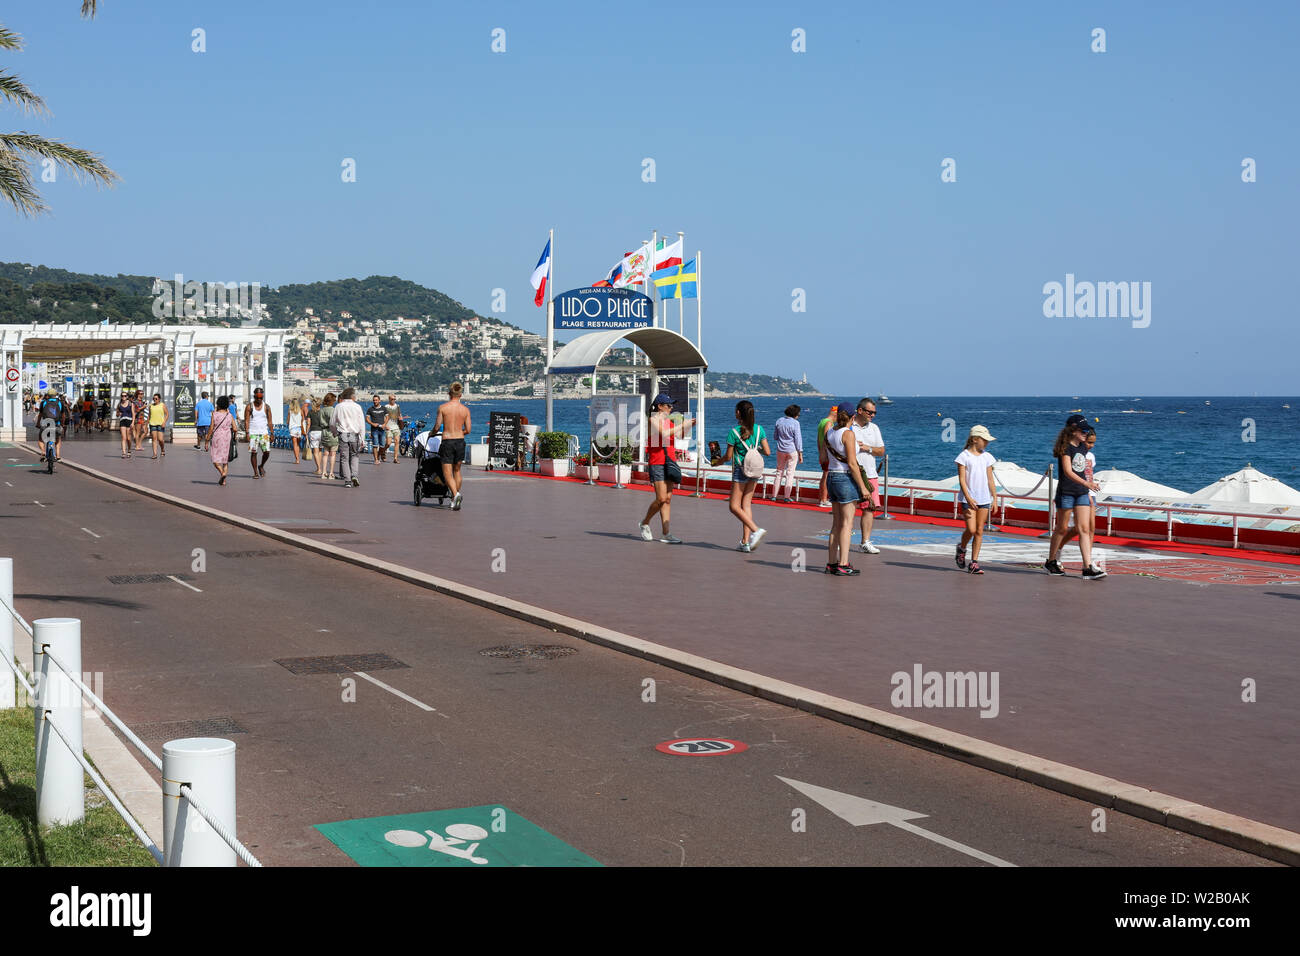 Incidental people on Promenades des Anglais beach boulevard in Nice, France - Stock Image